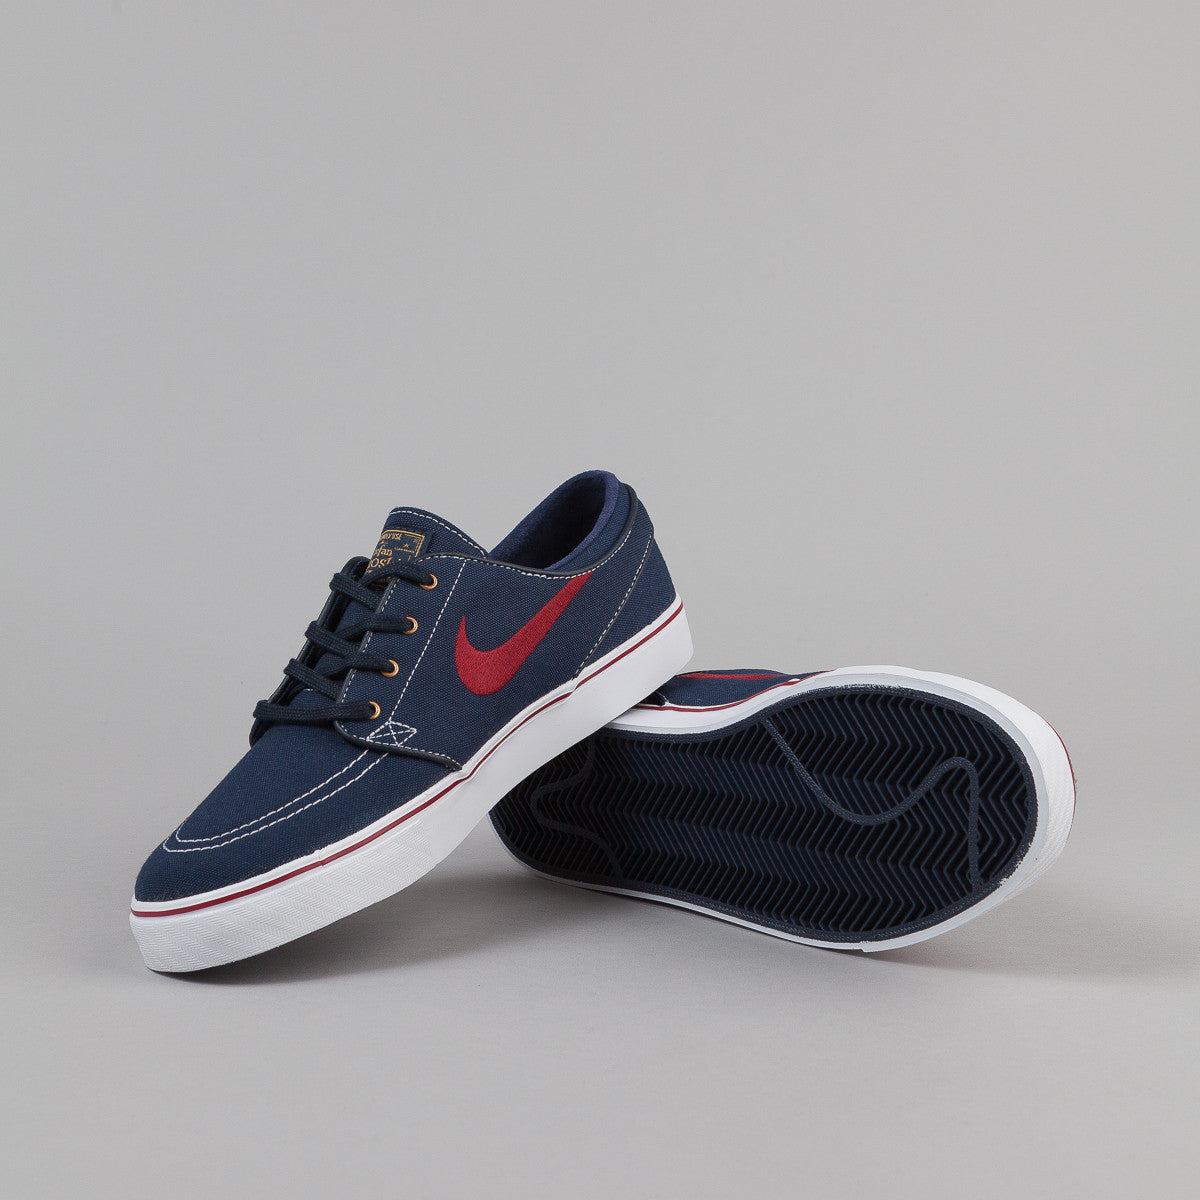 promo code 19f00 11217 metallic grey red nike stefan janoski shoes